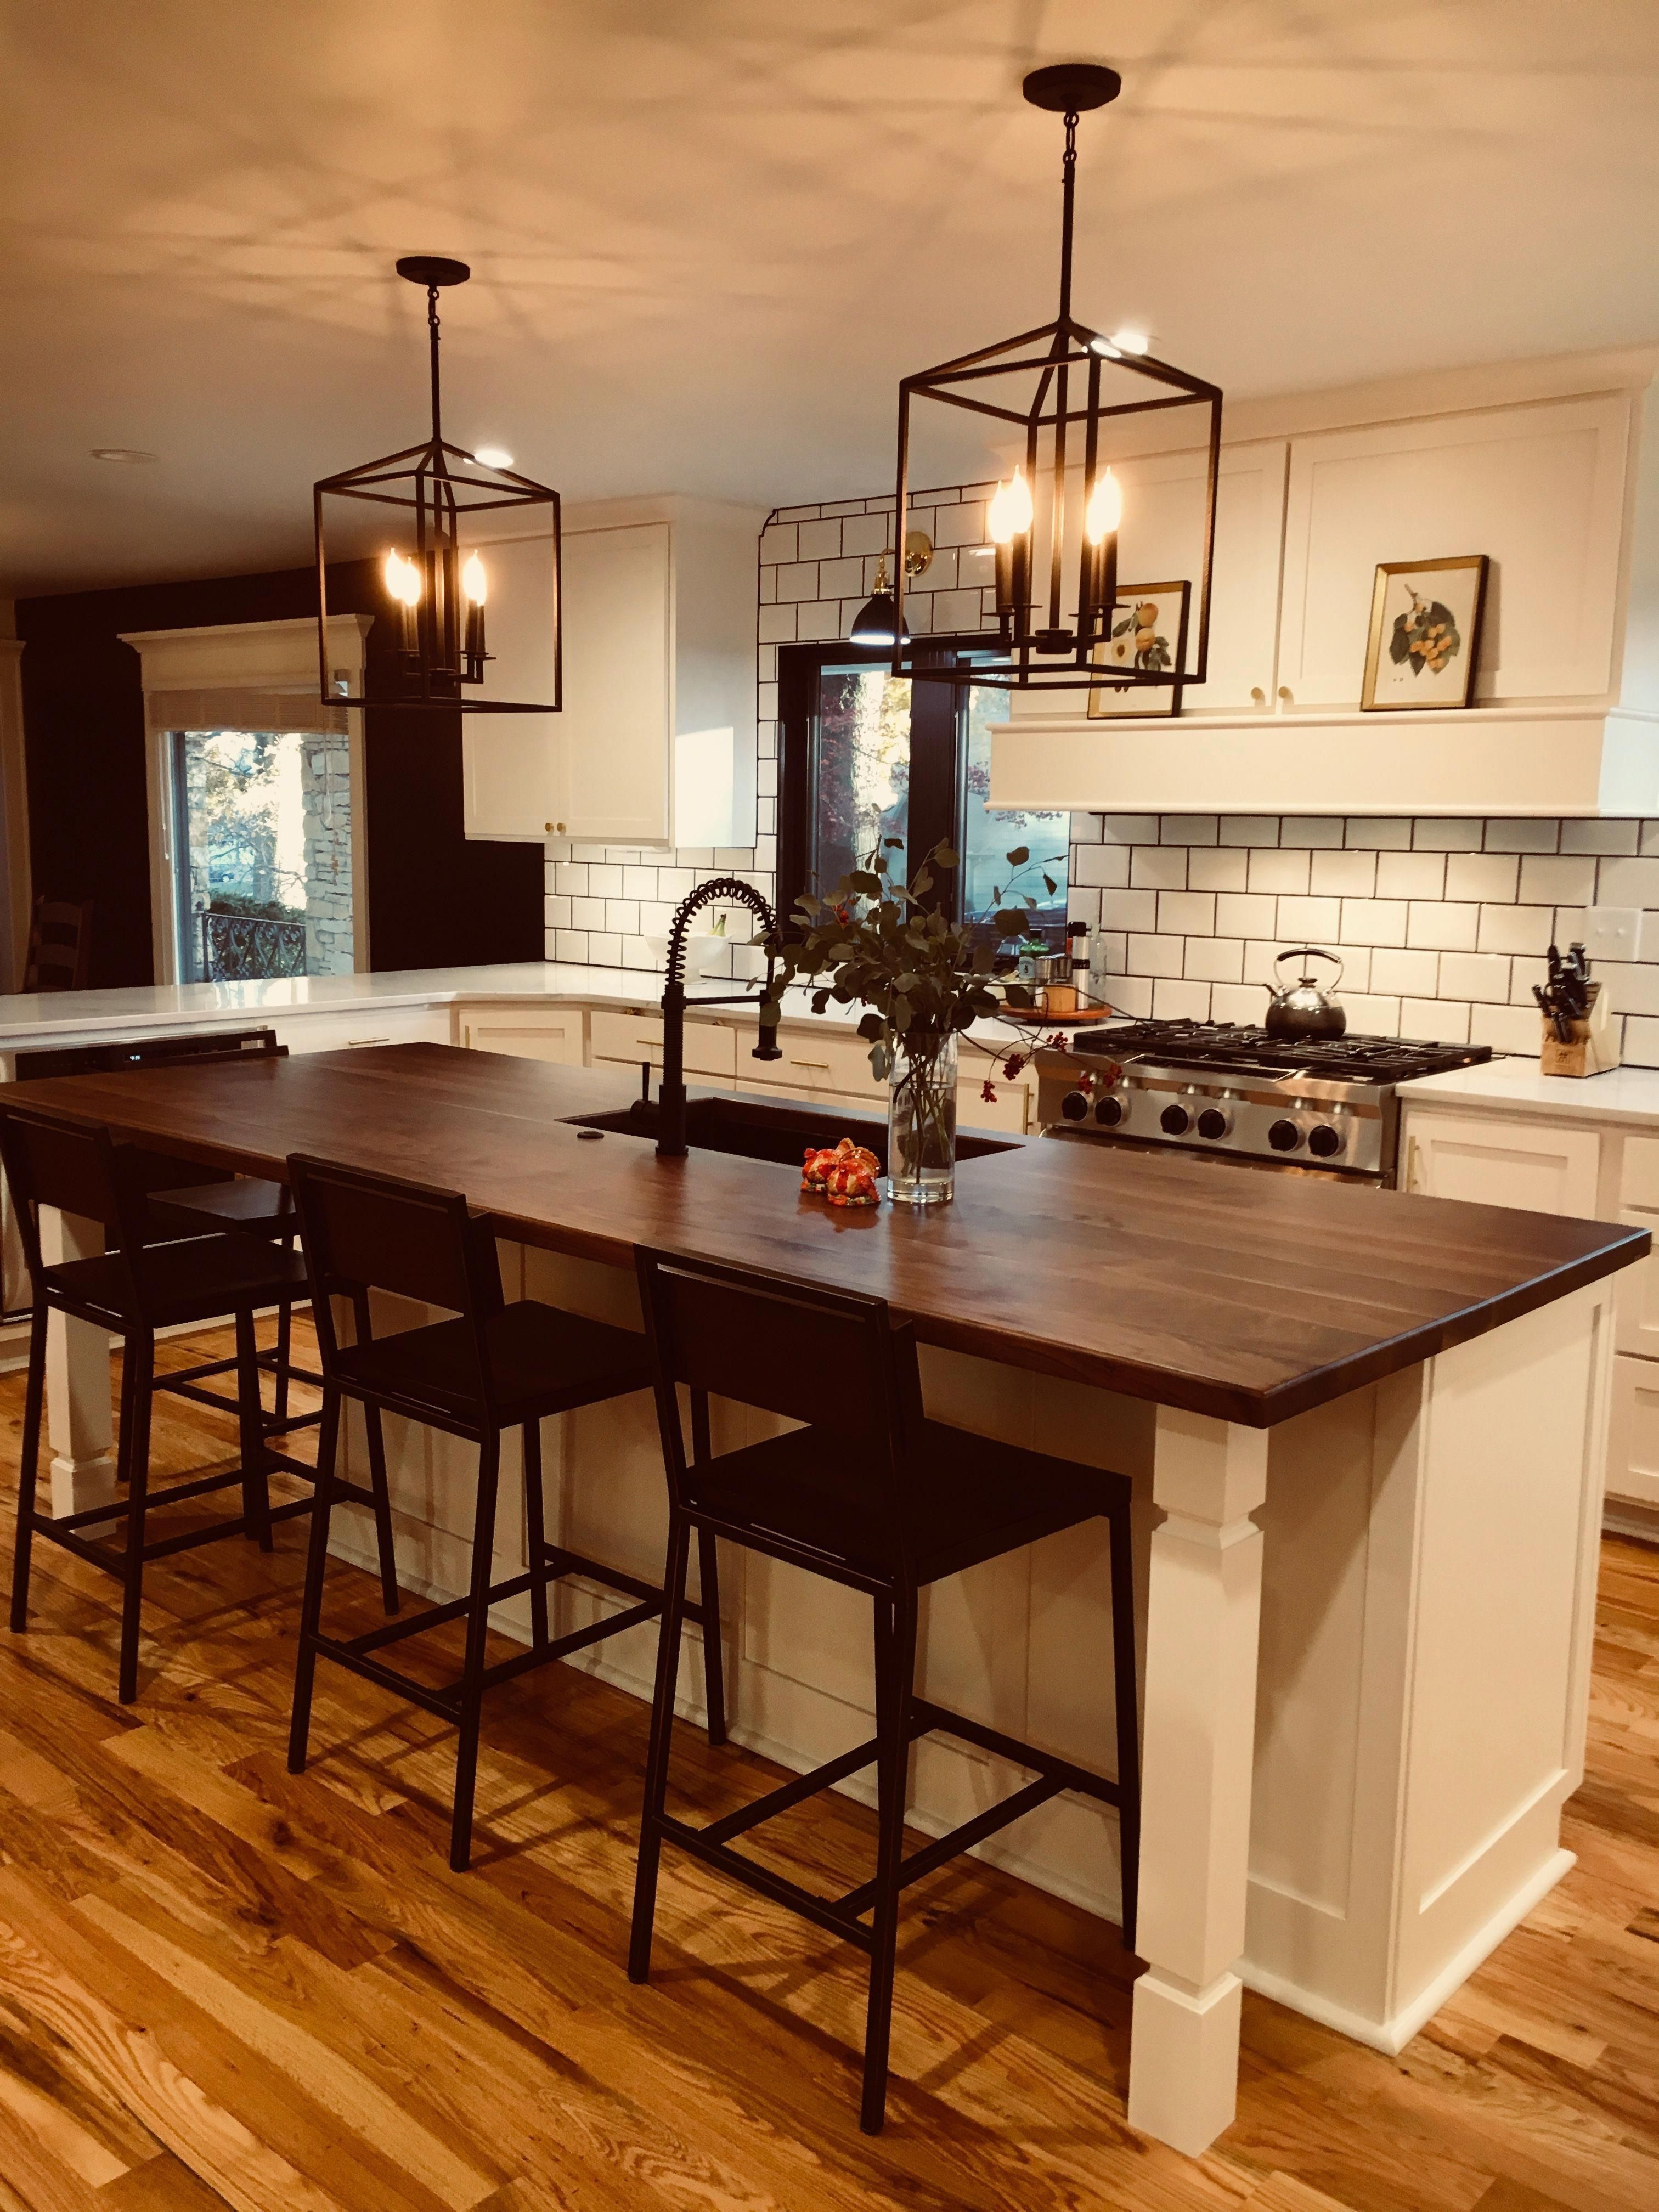 68 premium large modern eat in kitchen with an island pictures farmhouse kitchen design home on kitchen island ideas modern farmhouse id=20382